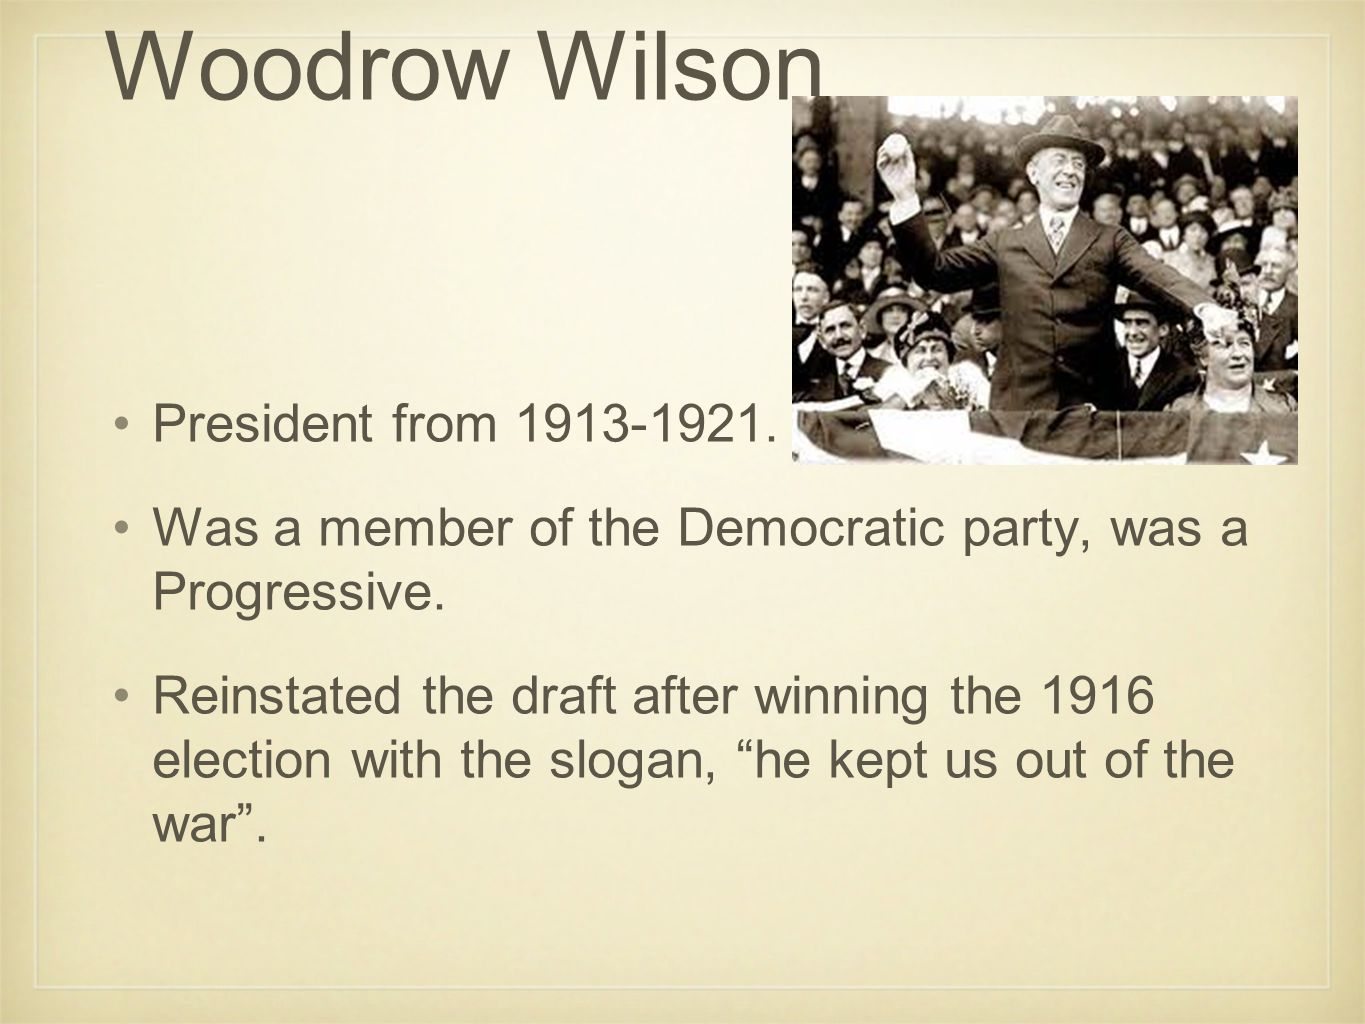 Woodrow Wilson President from 1913-1921. Was a member of the Democratic party, was a Progressive.